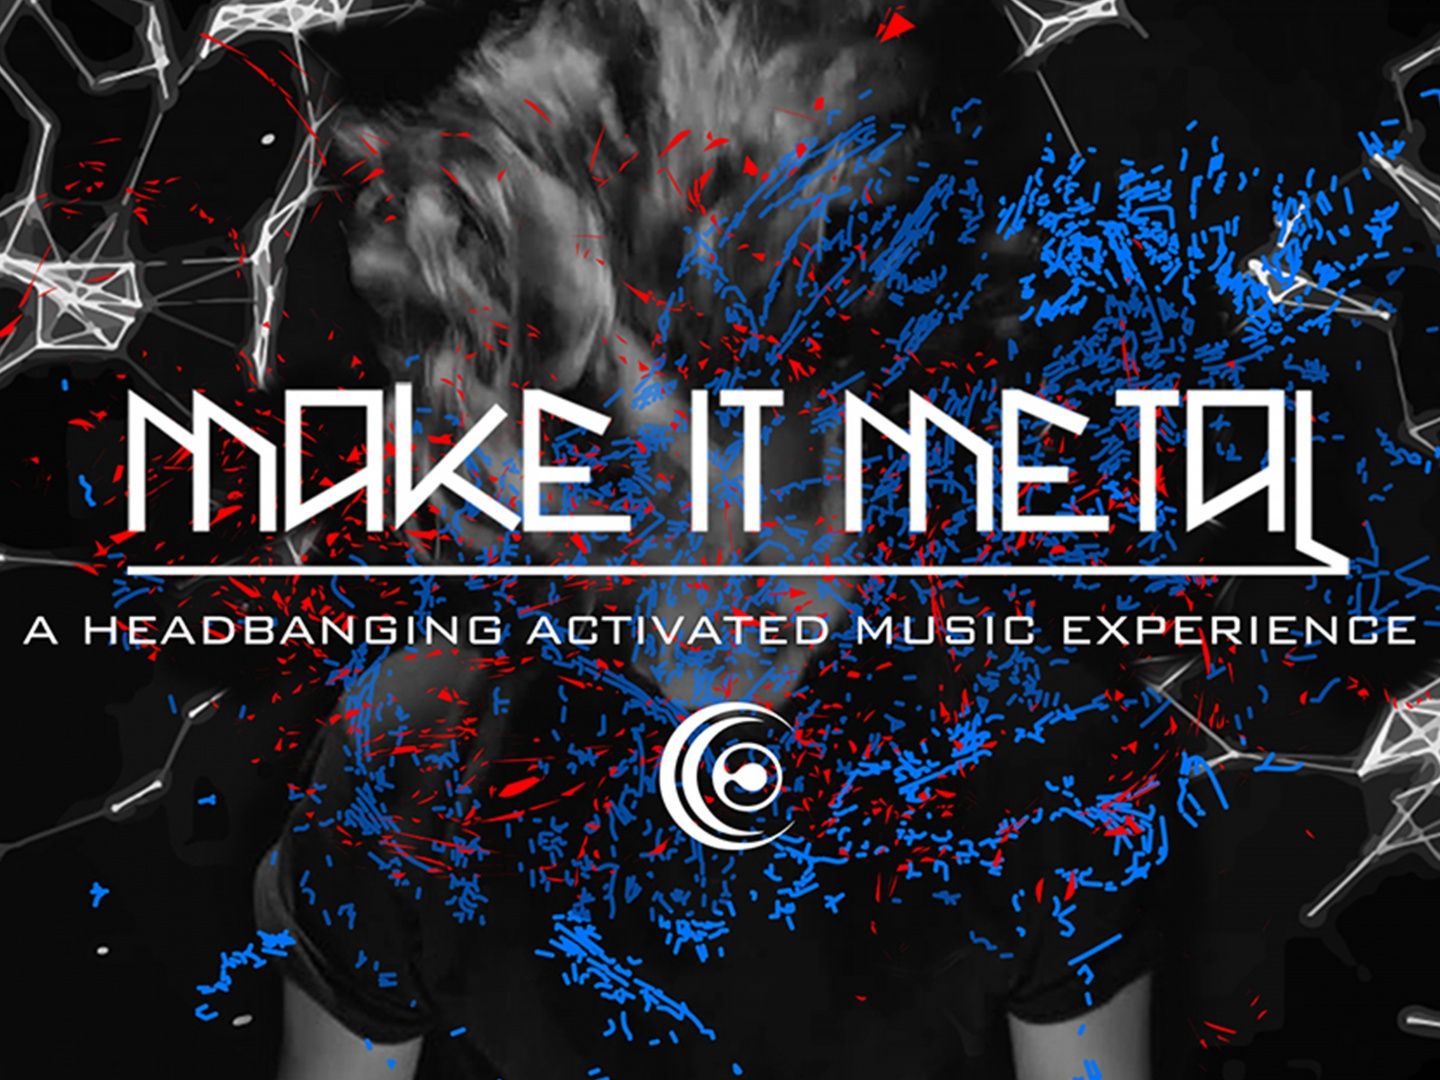 Make It Metal Thumbnail